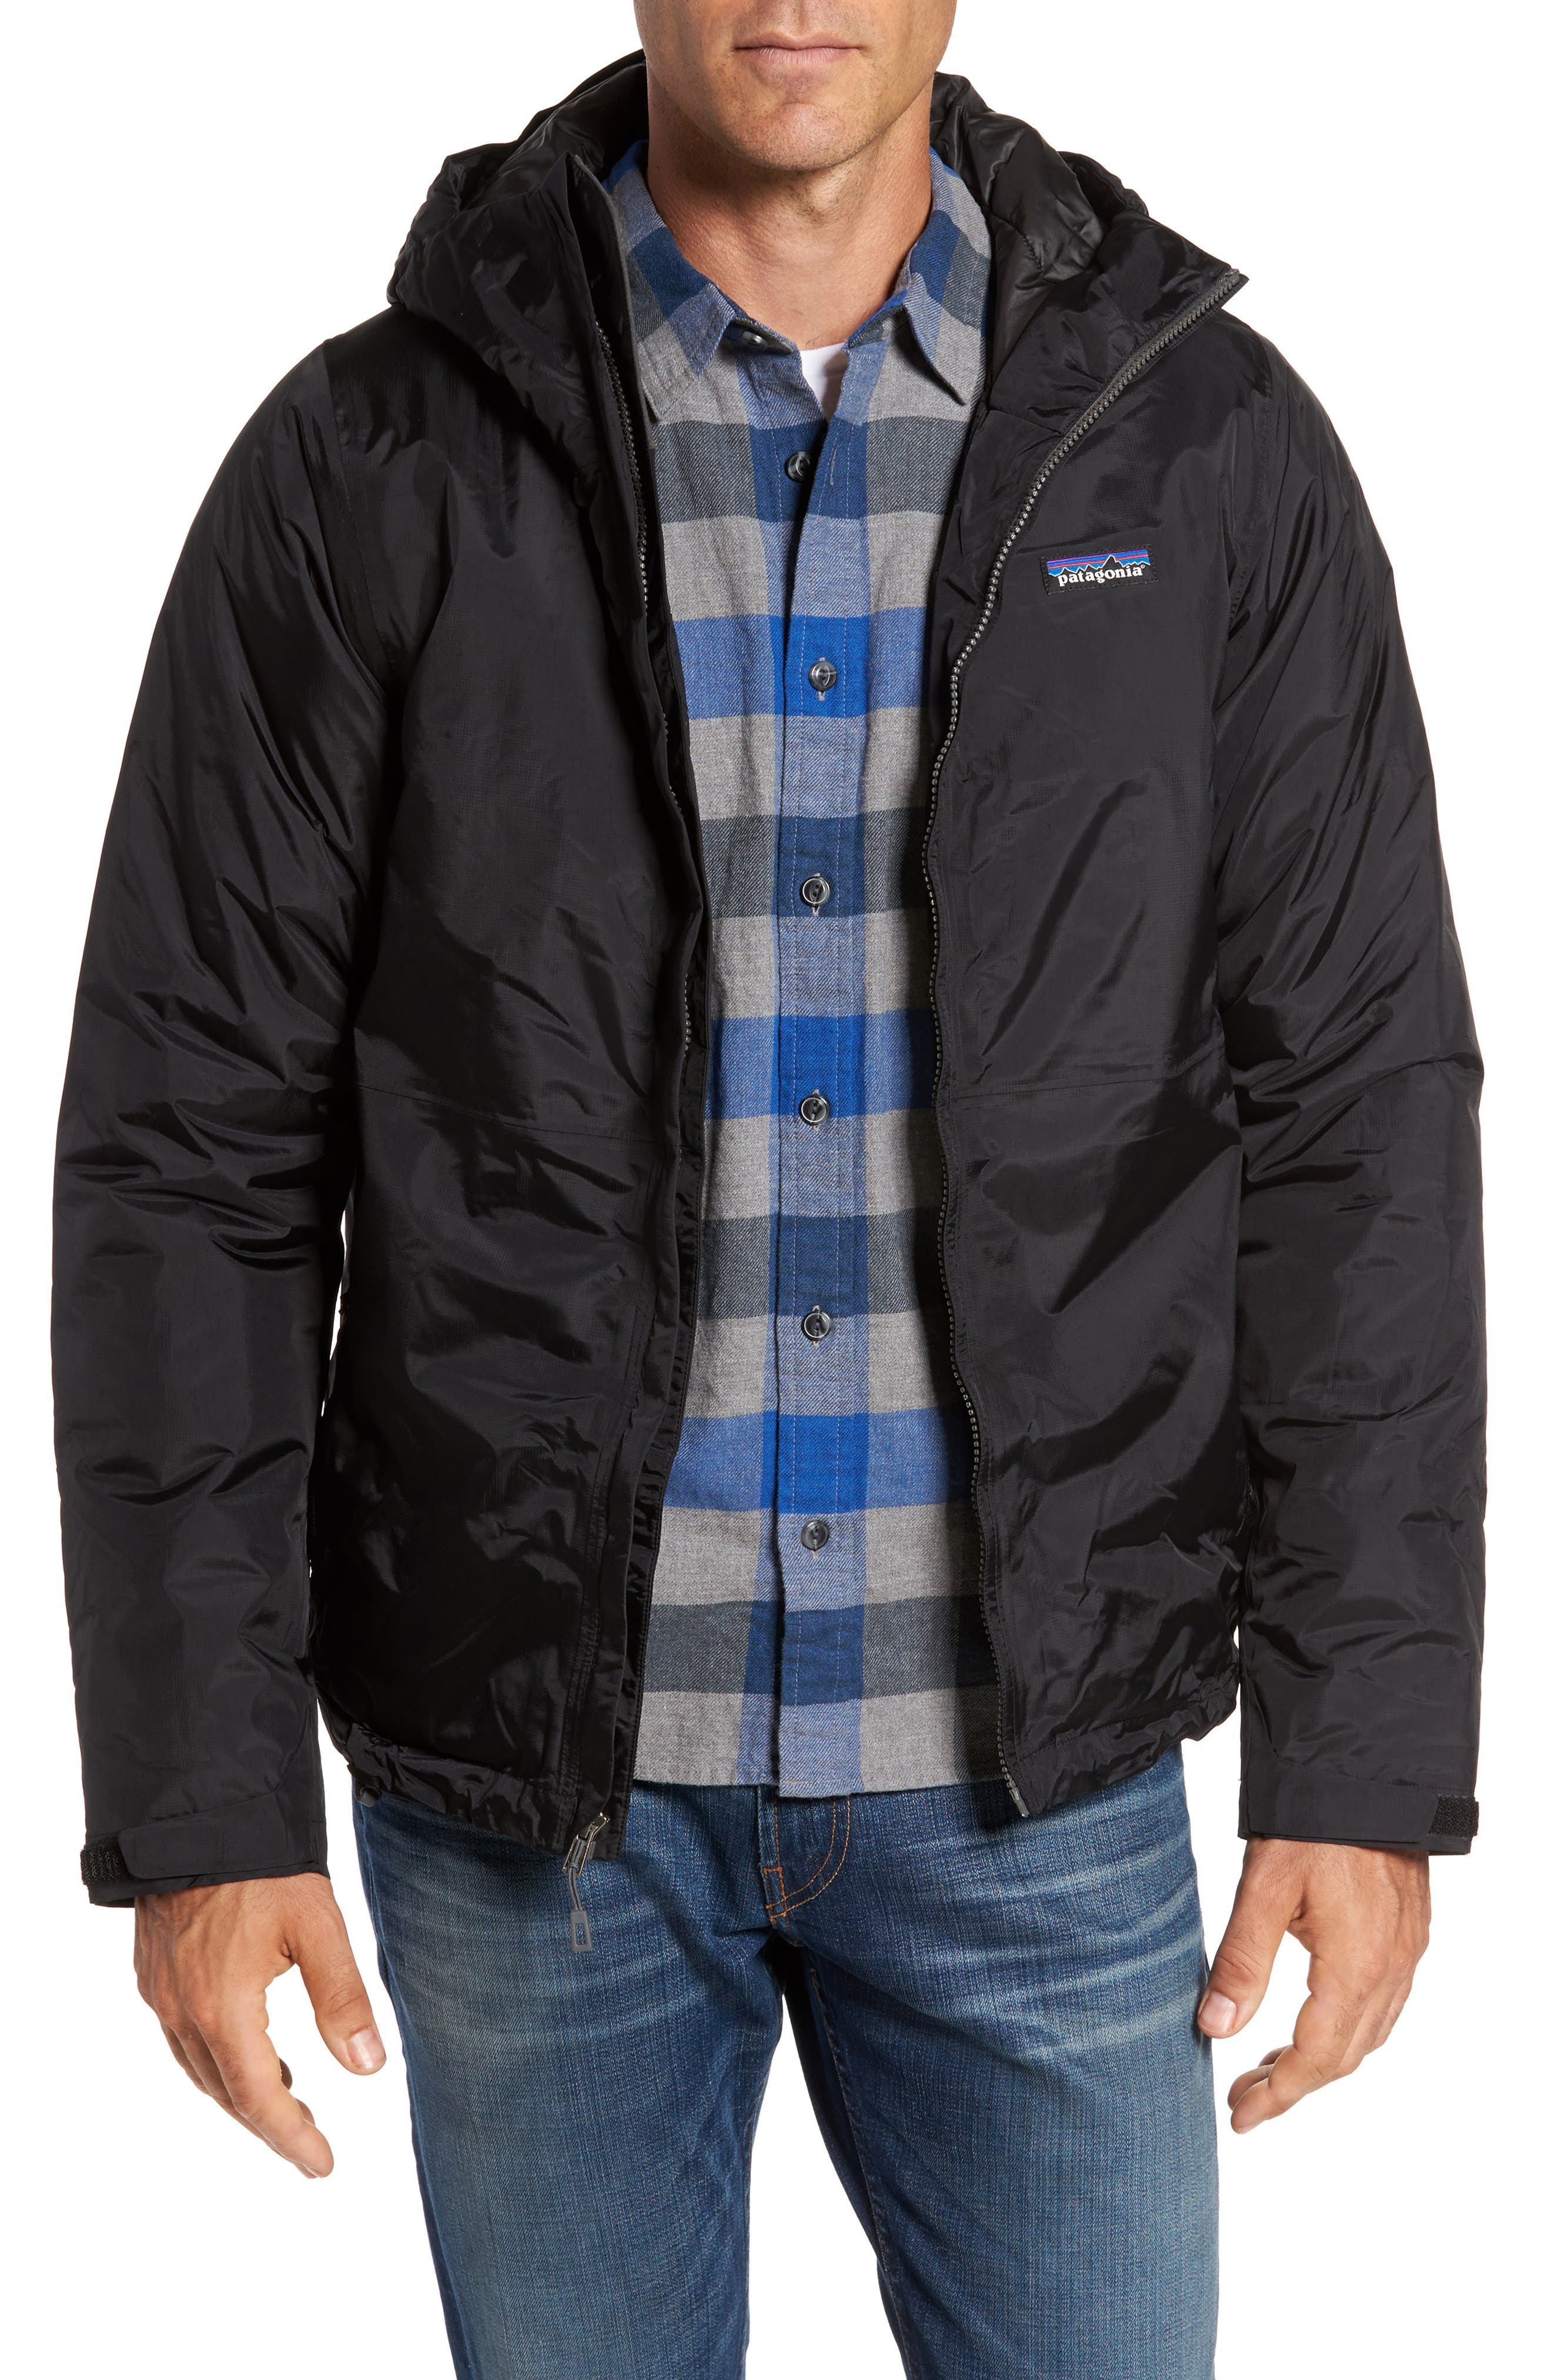 Main Image - Patagonia Torrentshell H2No® Packable Insulated Rain Jacket